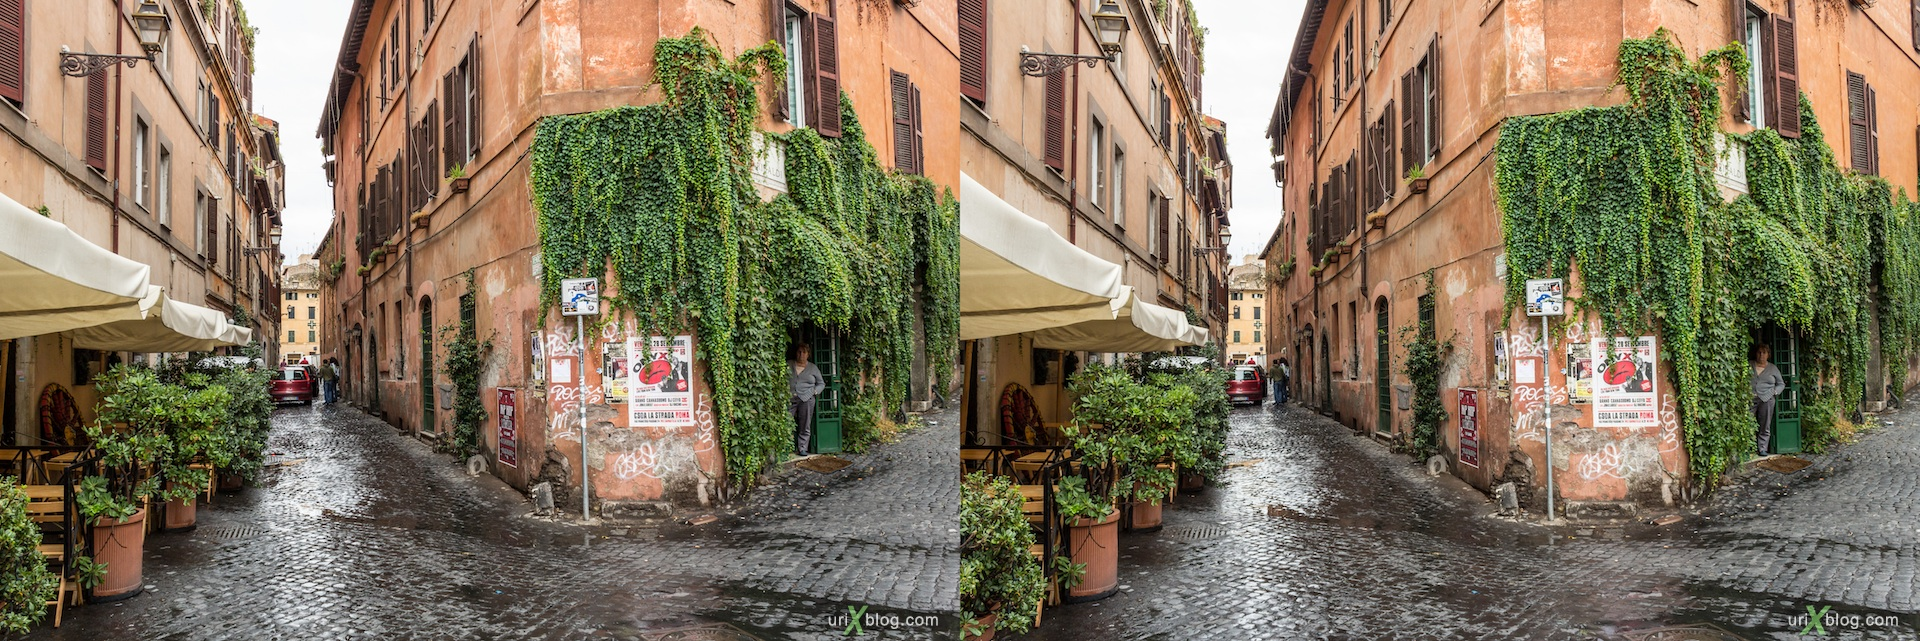 2012, via Garibaldi street, via della Scala street, corner, Rome, Italy, Europe, 3D, stereo pair, cross-eyed, crossview, cross view stereo pair